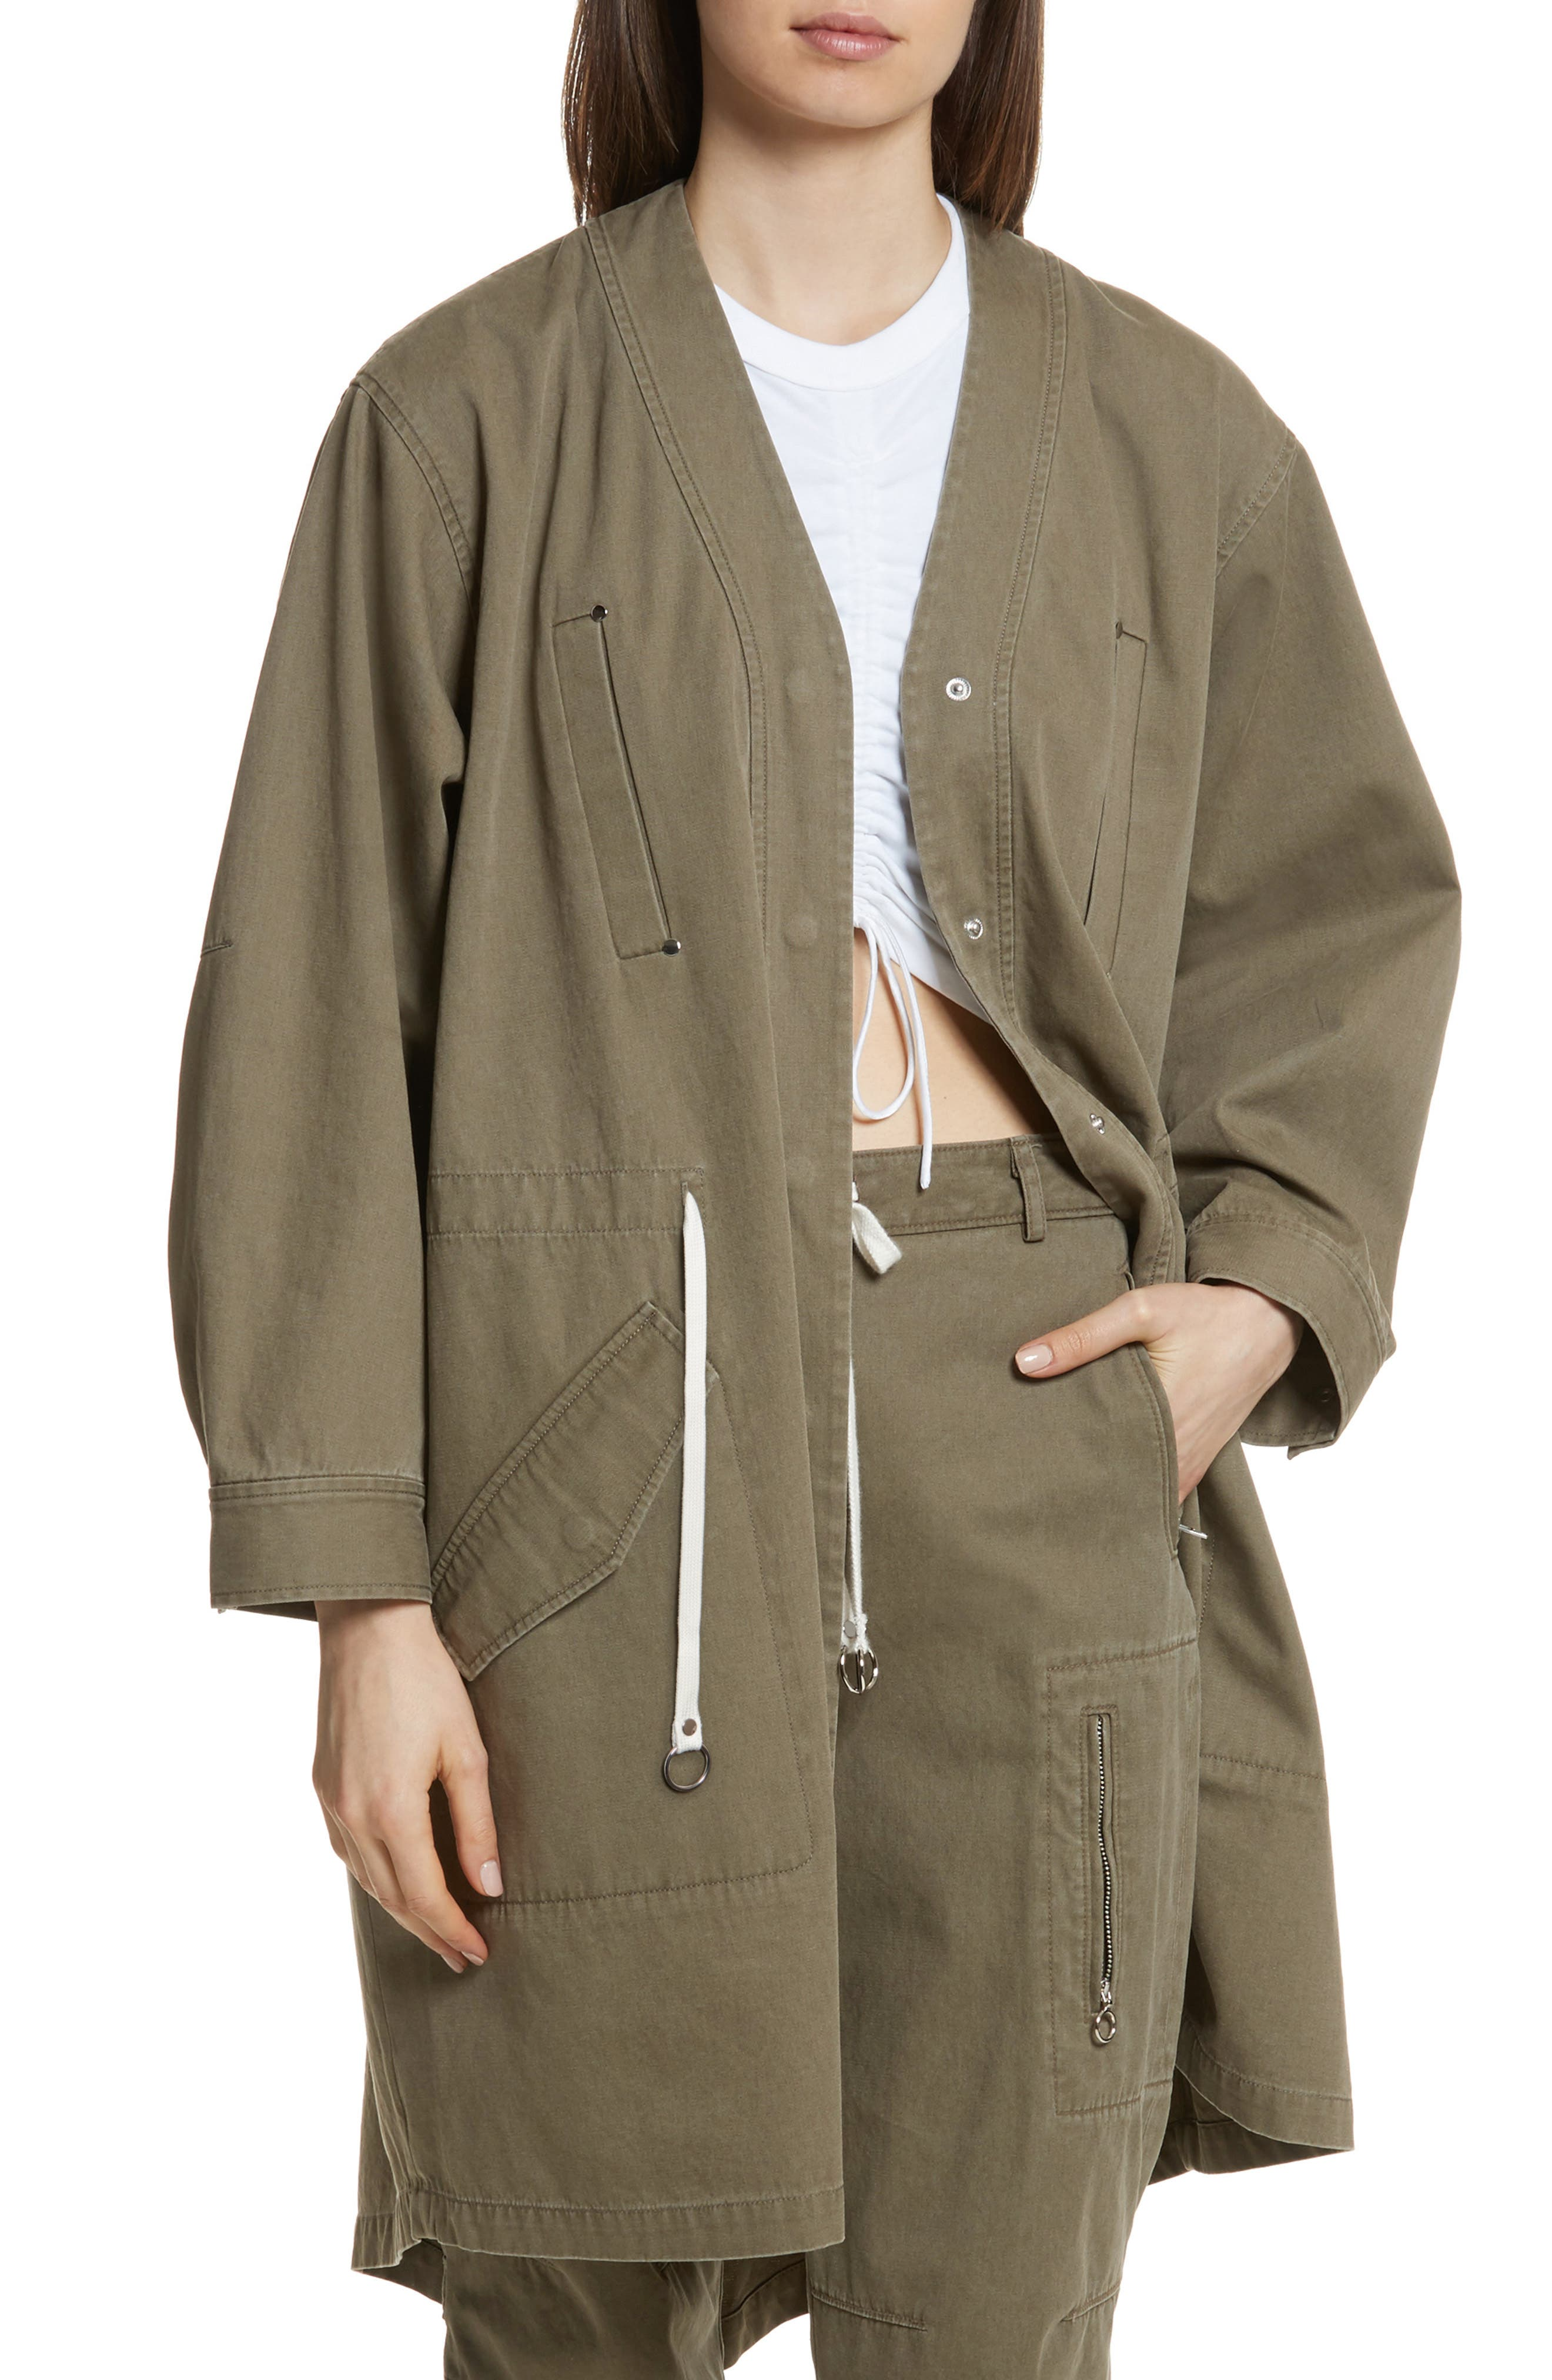 T by Alexander Wang Longline Twill Jacket,                         Main,                         color, 309